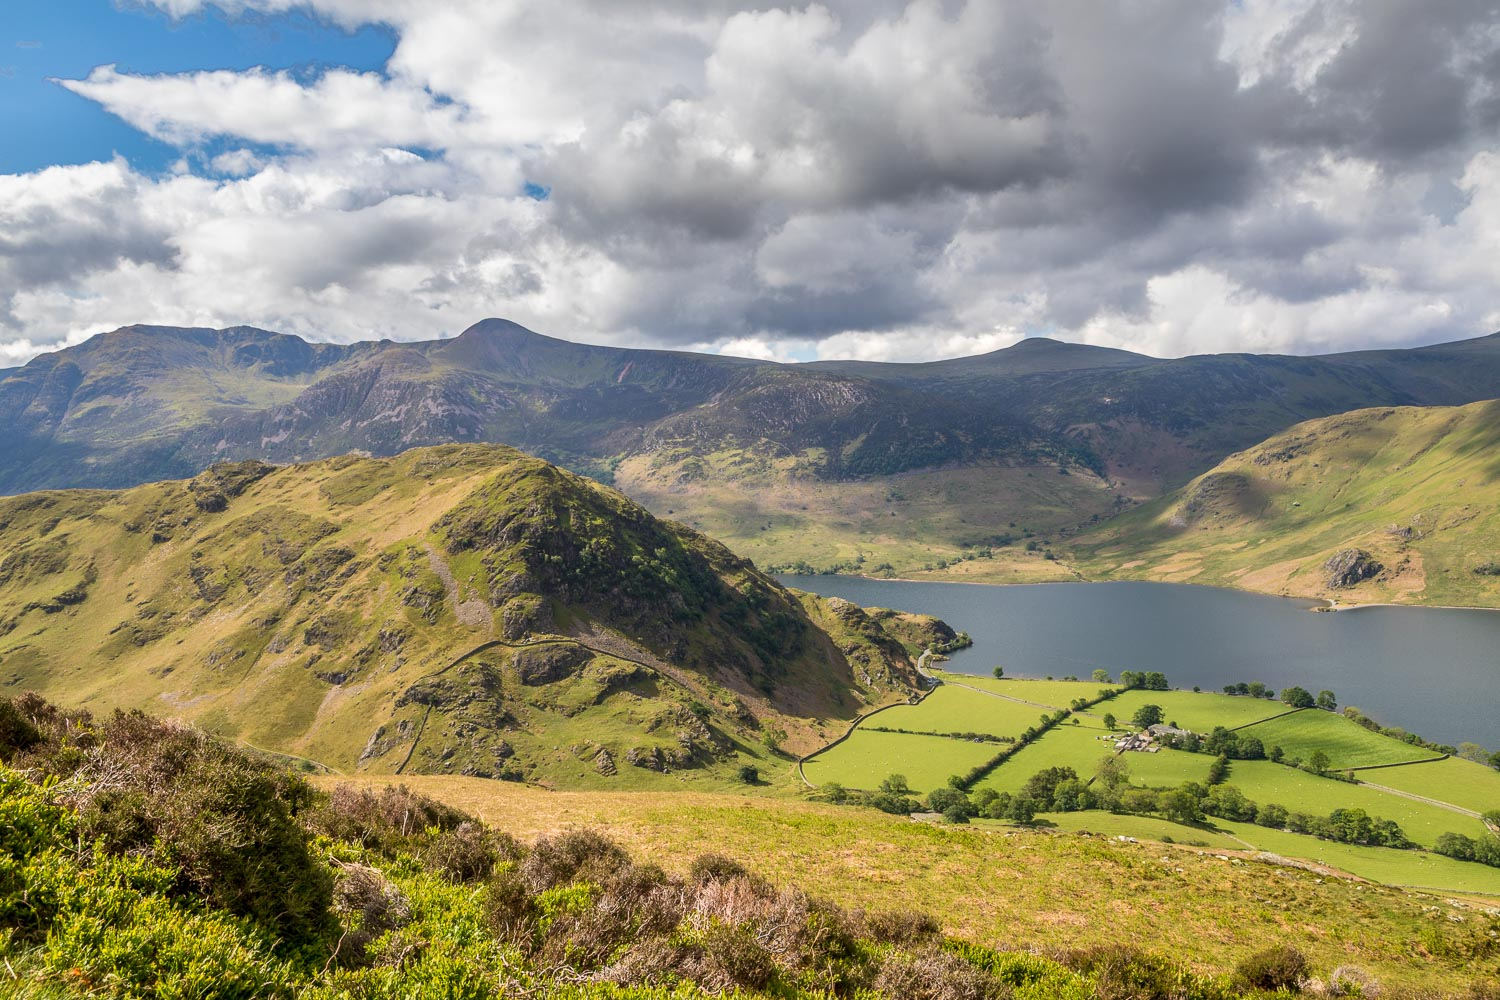 Rannerdale Knotts and the High Stile range